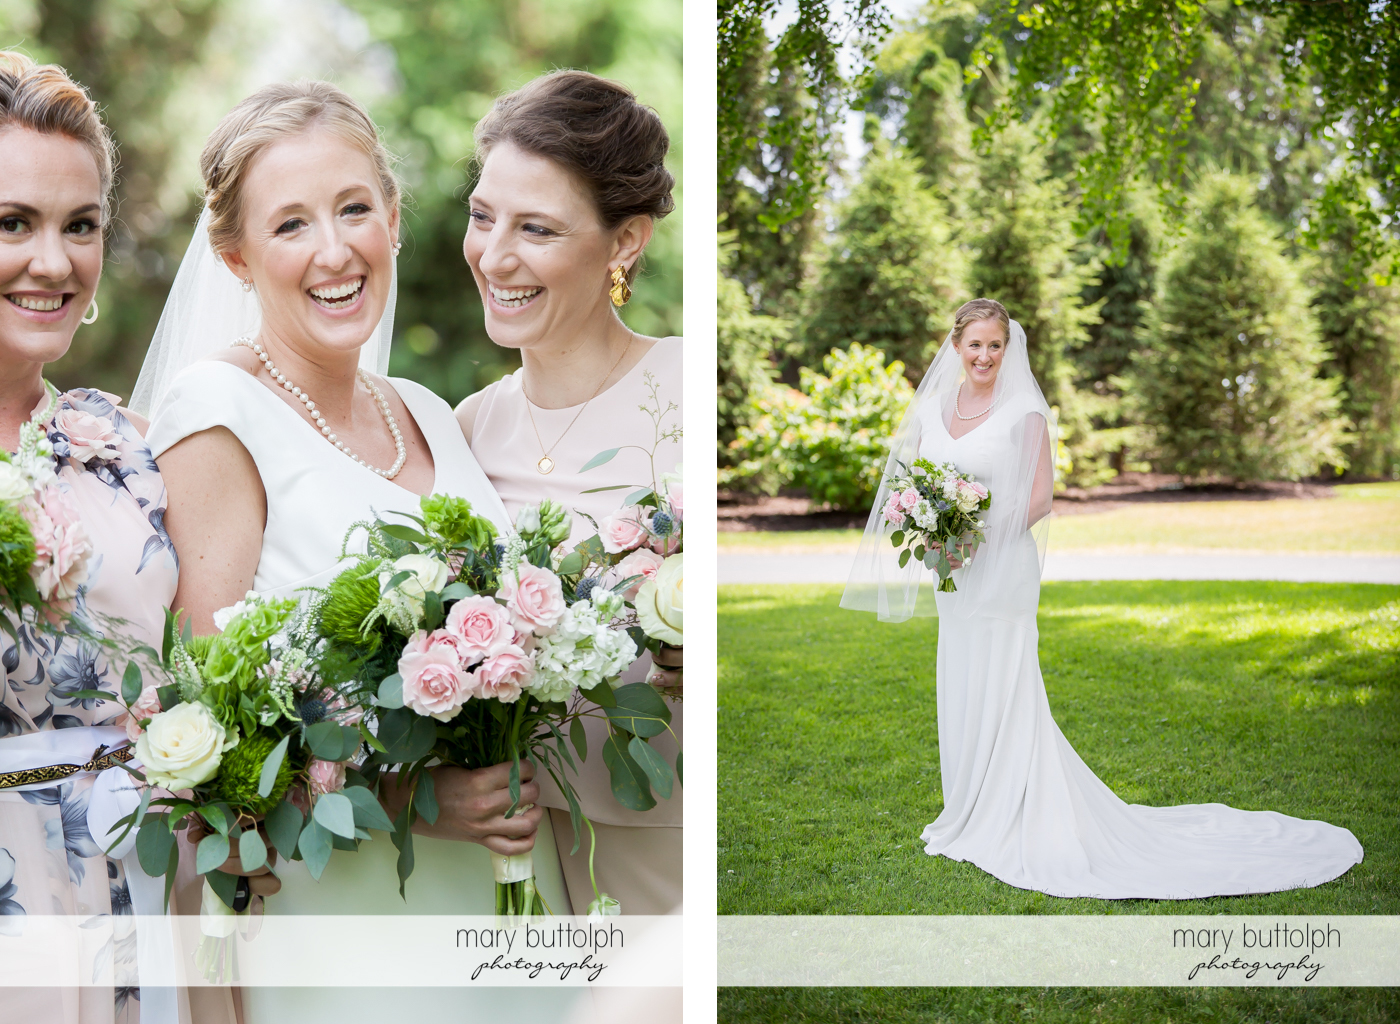 Bride with bridesmaids and in a solo shot in the garden at the Inns of Aurora Wedding